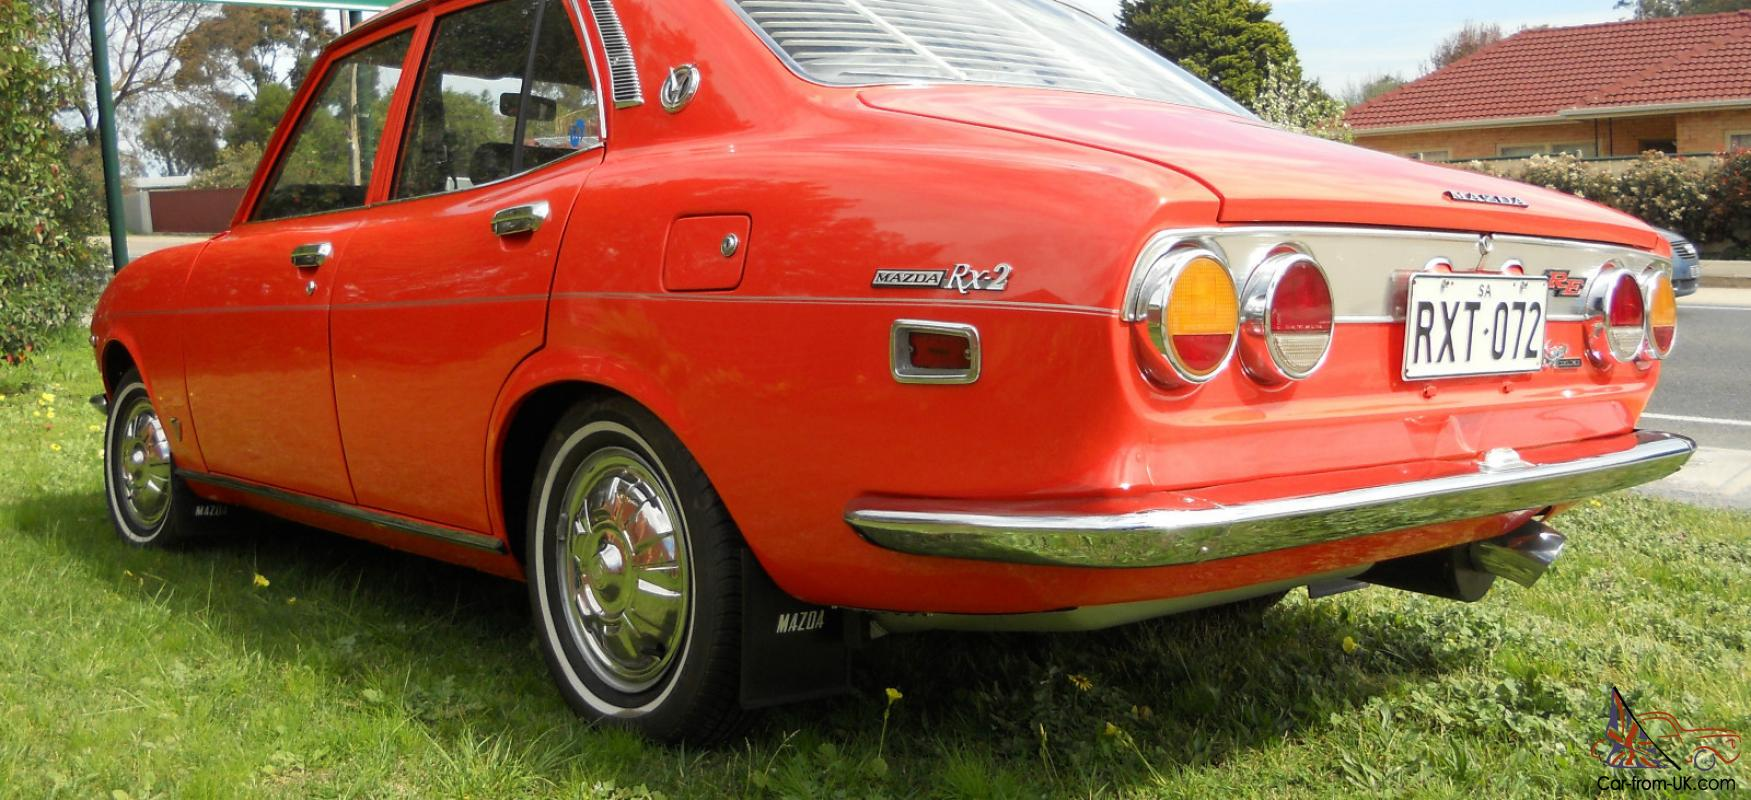 mazda rx2 series 1 1972 not r100 rx3 rx4 rx5 rx7 rotary in